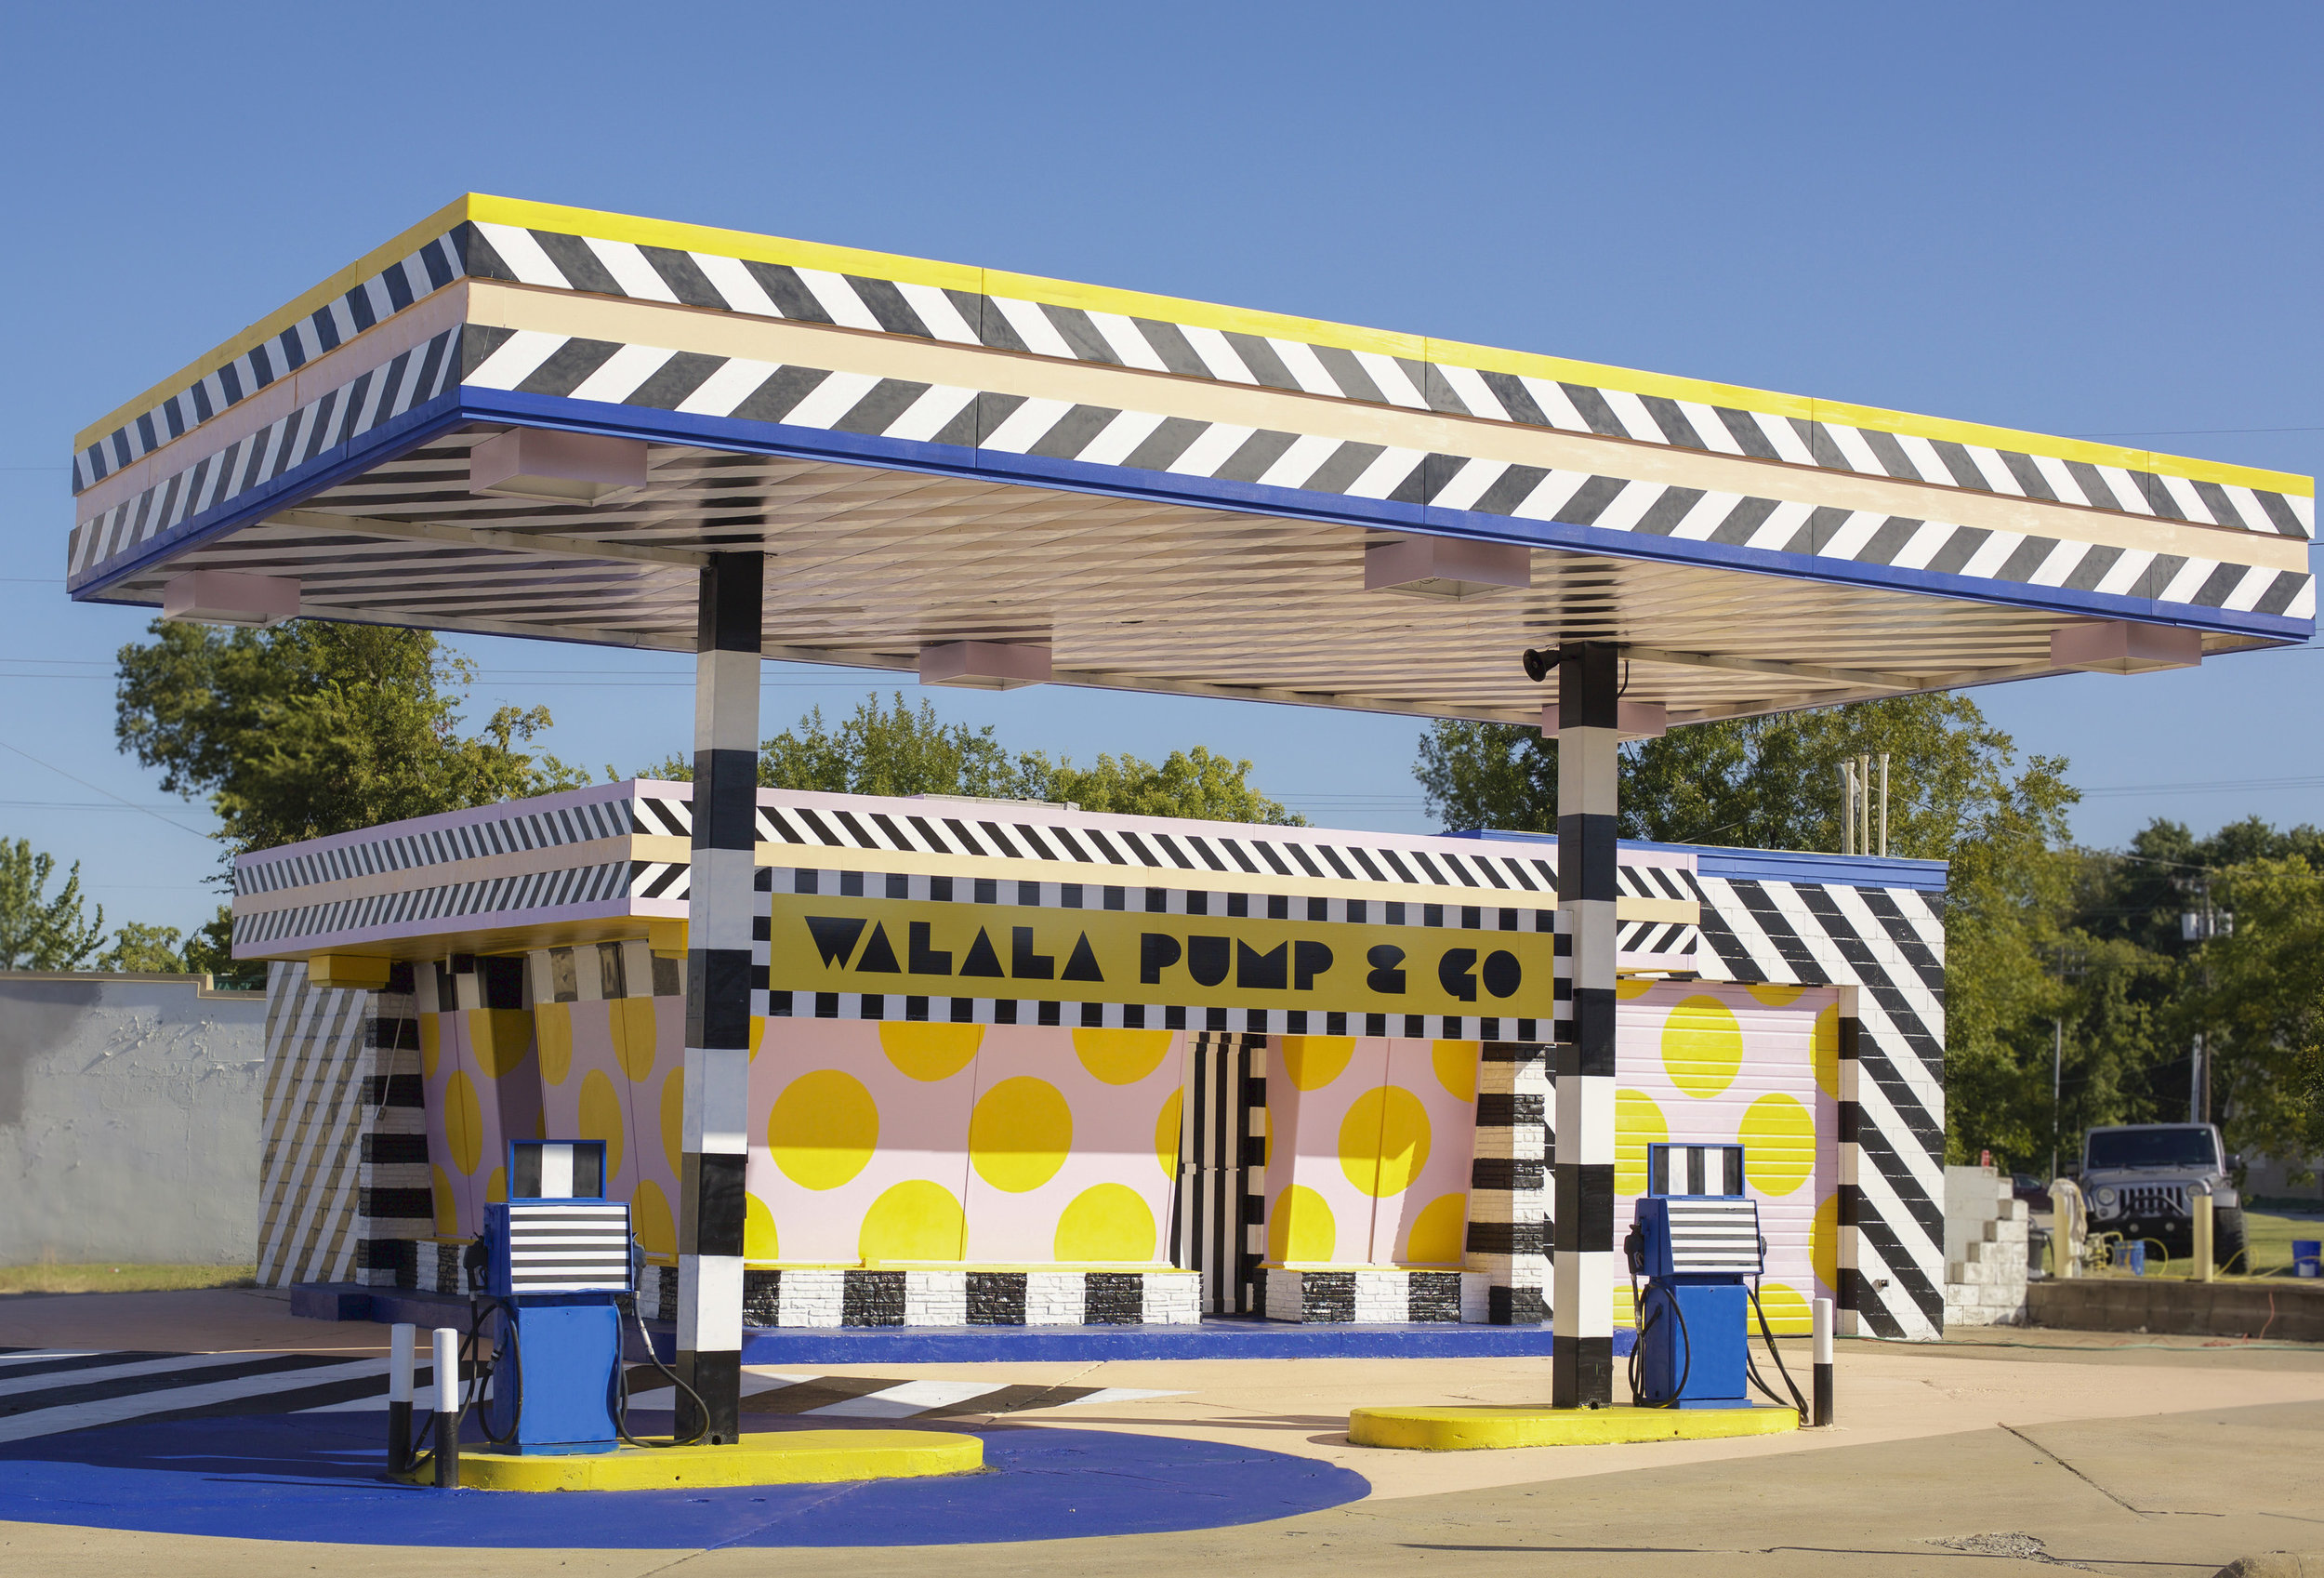 Camille Walala transforms an old service station